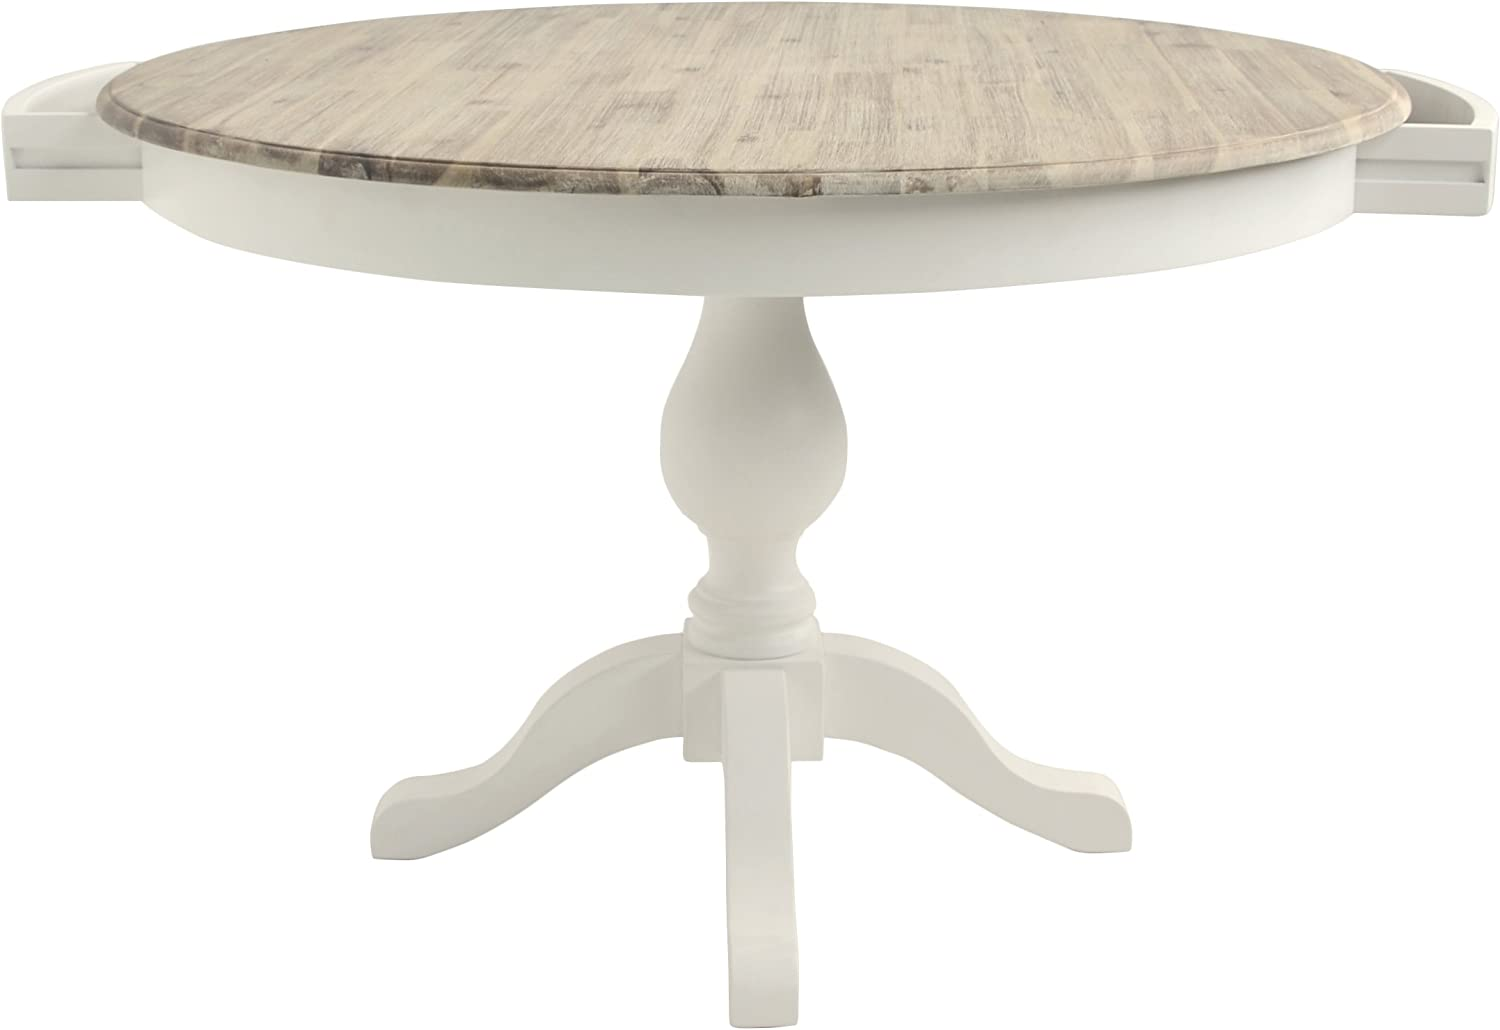 Florence Large Round Pedestal Table with Thick limed Wooden top and Two Drawers in Navy Blue White